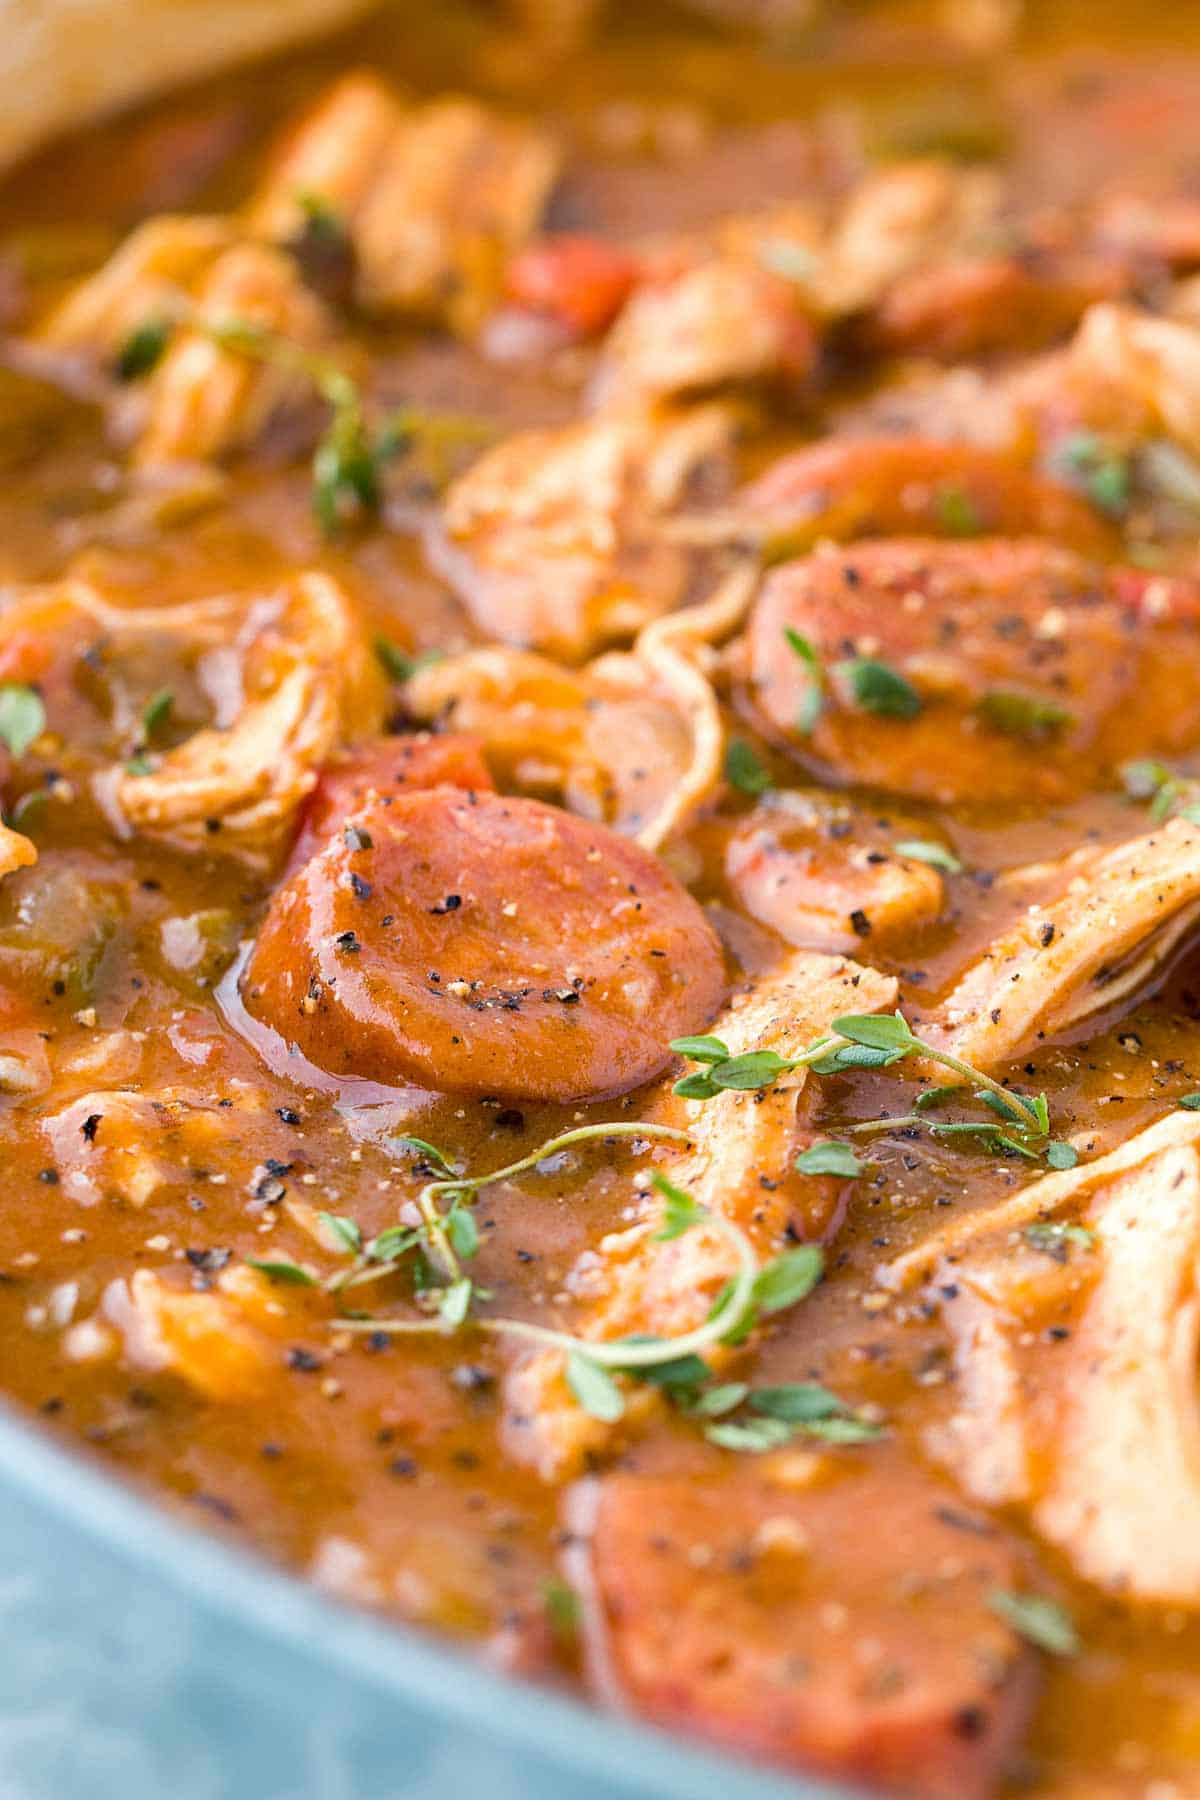 Chicken Andouille Sausage Gumbo - Smoky sausage, okra, and aromatic vegetables make this authentic New Orleans recipe perfect for sharing. | jessicagavin.com